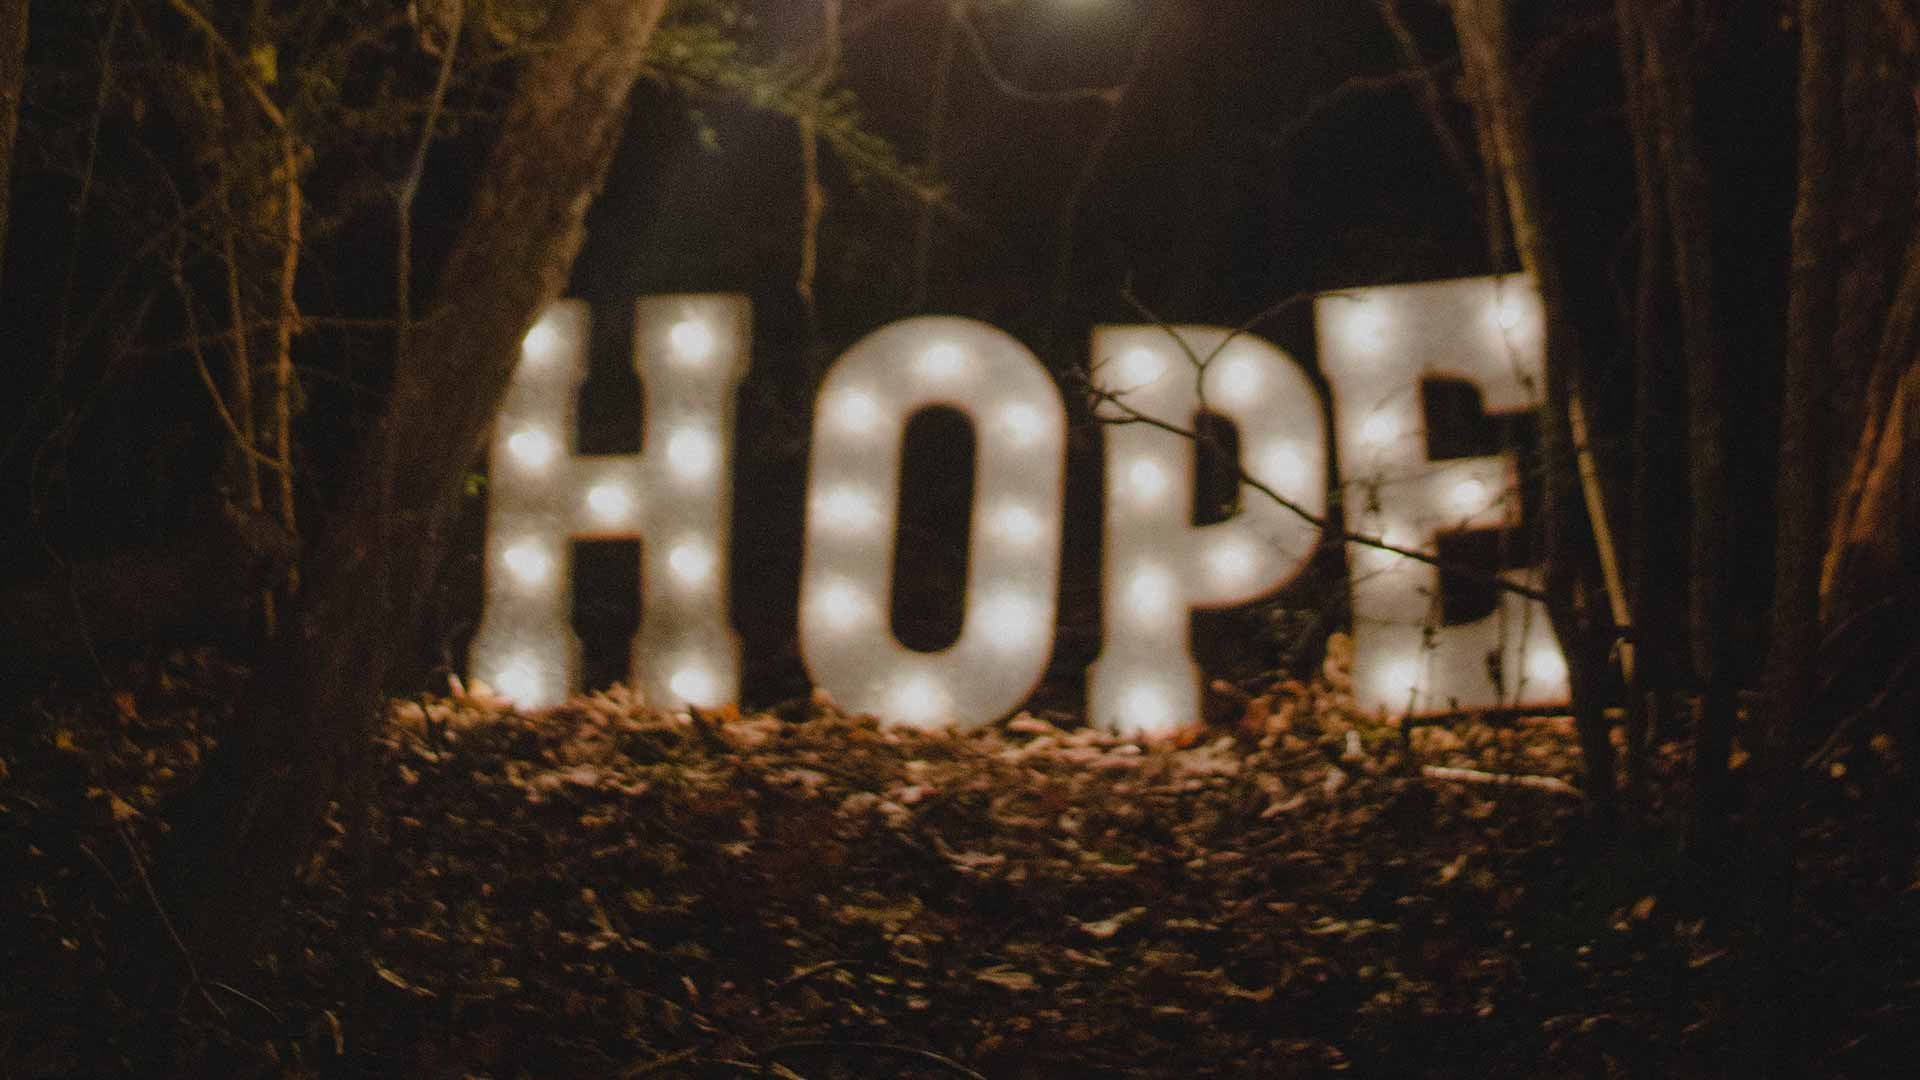 lighted letters that spell hope